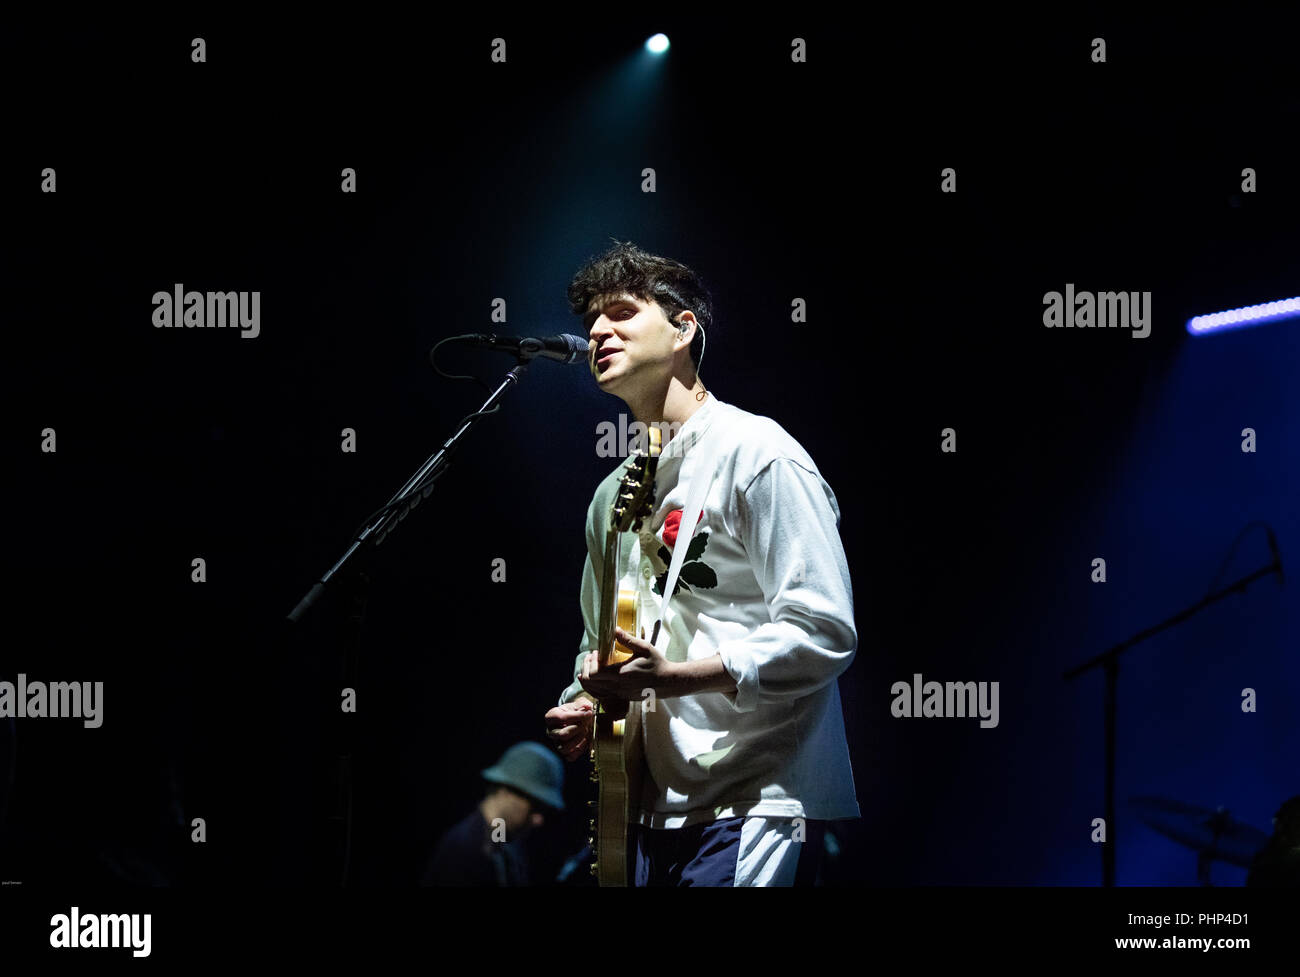 Wiltshire, dorset  UK. 1 September 2018. end of the road festival 2018.vampire weekend playing the main stage on saturday 1.918 the main act of the night  Ezra Koenig on lead vocals and guitar  the 1st time of playing the uk in four yerars Credit: Paul Bevan/Alamy Live News Stock Photo